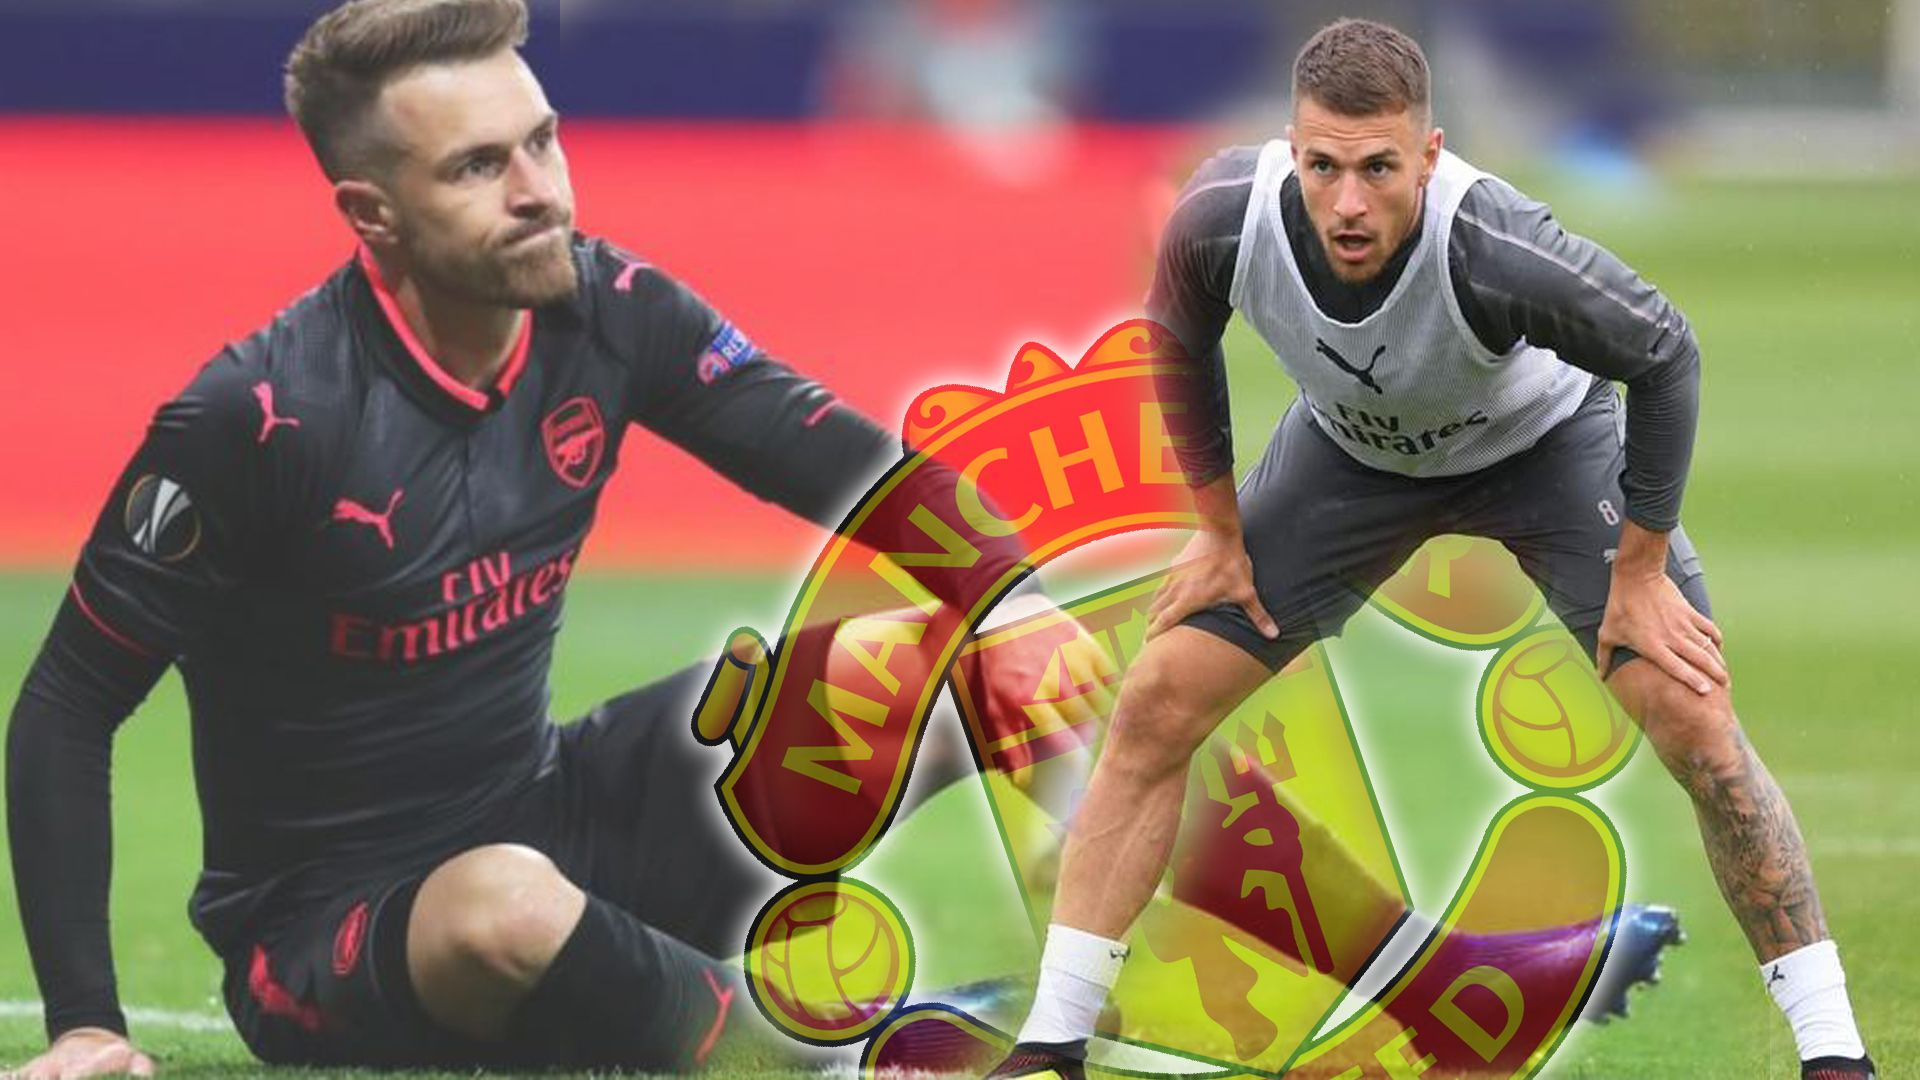 Aaron Ramsey Speaks Out On Leaving Arsenal For Manchester United Transfer Latest News Now Mufc Ars Manchester United Transfer Manchester United Manchester